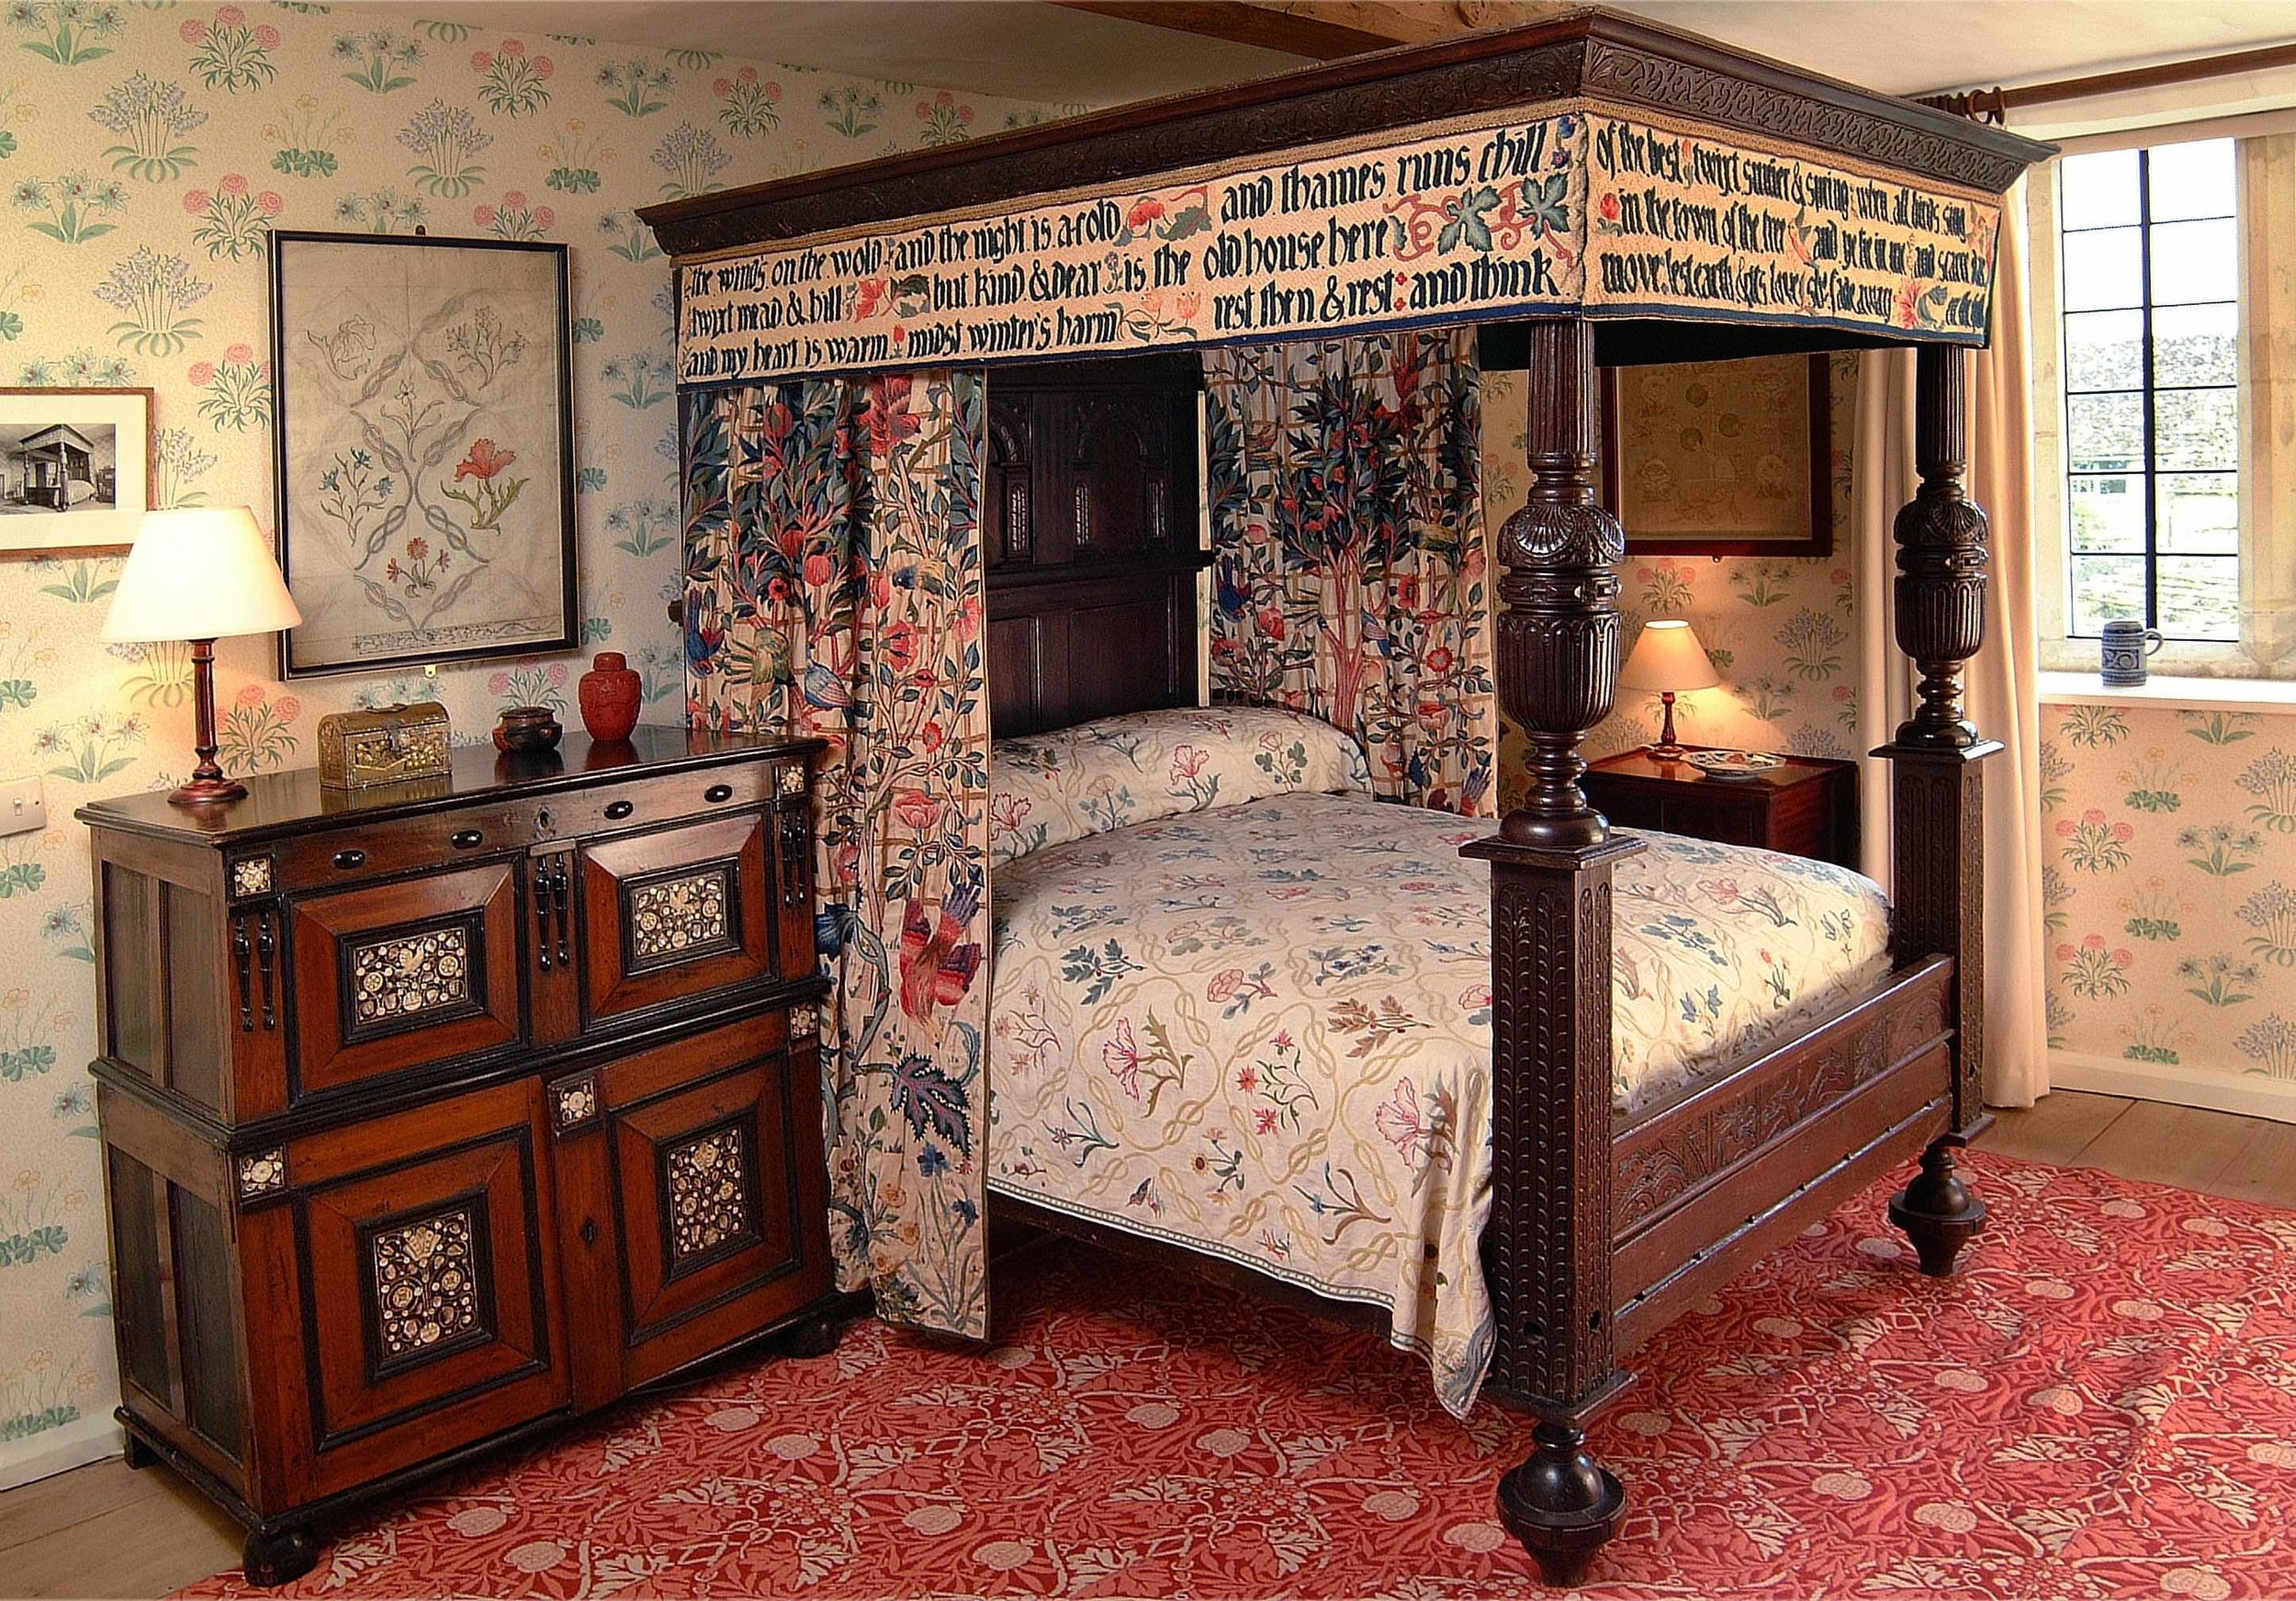 William Morris' Bedroom Kelmscott.jpg